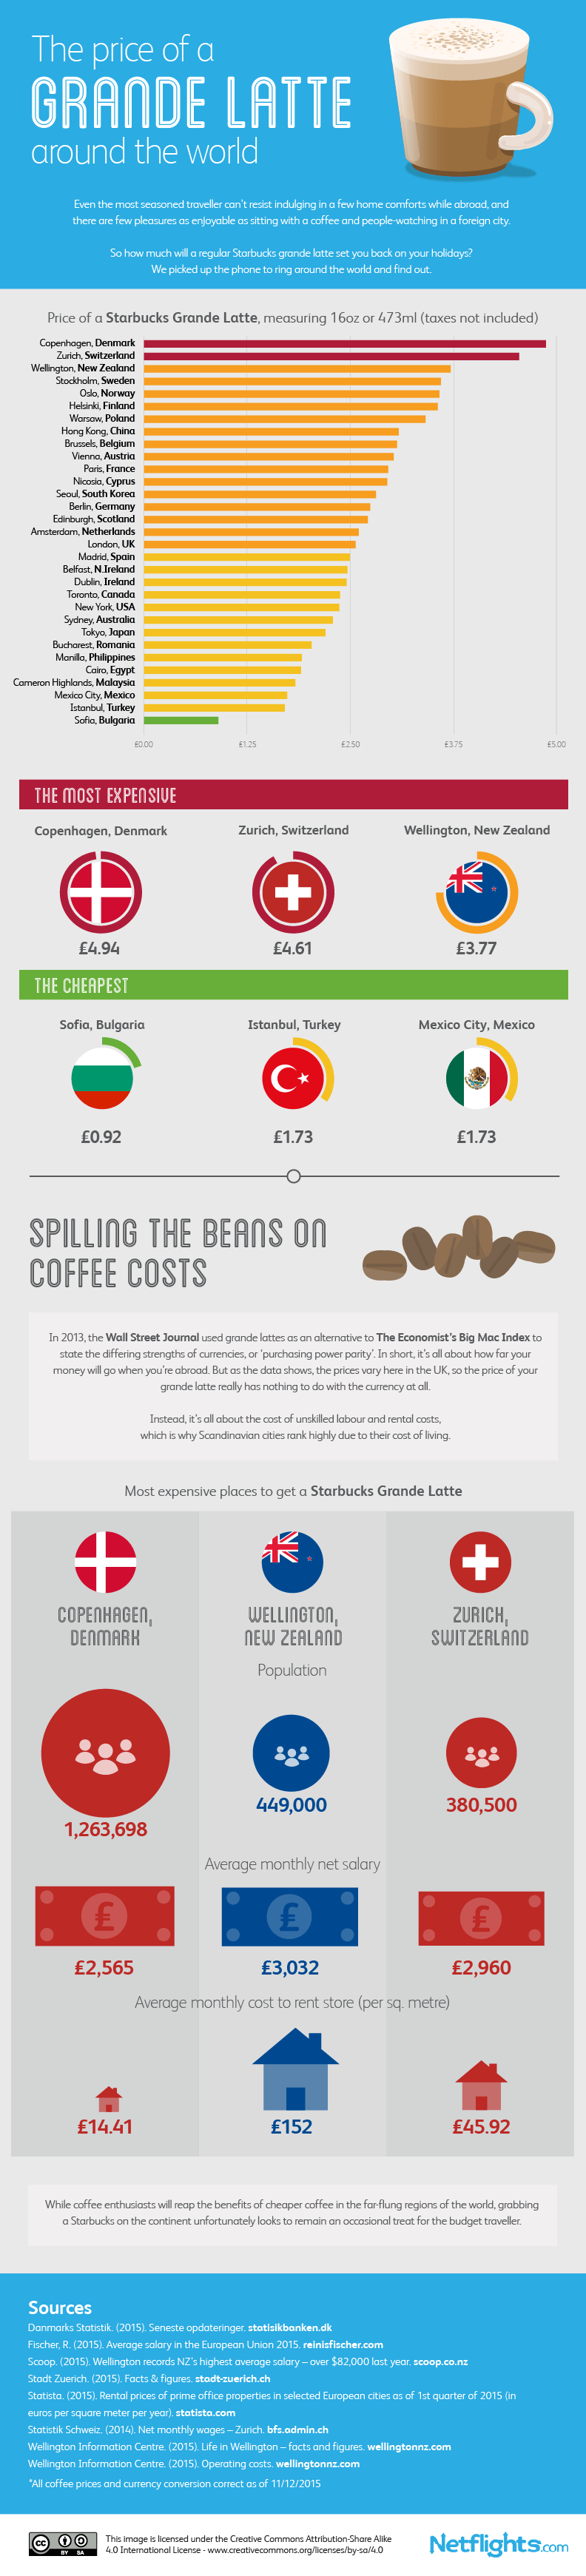 """""Price of Grande Latte Around the World"